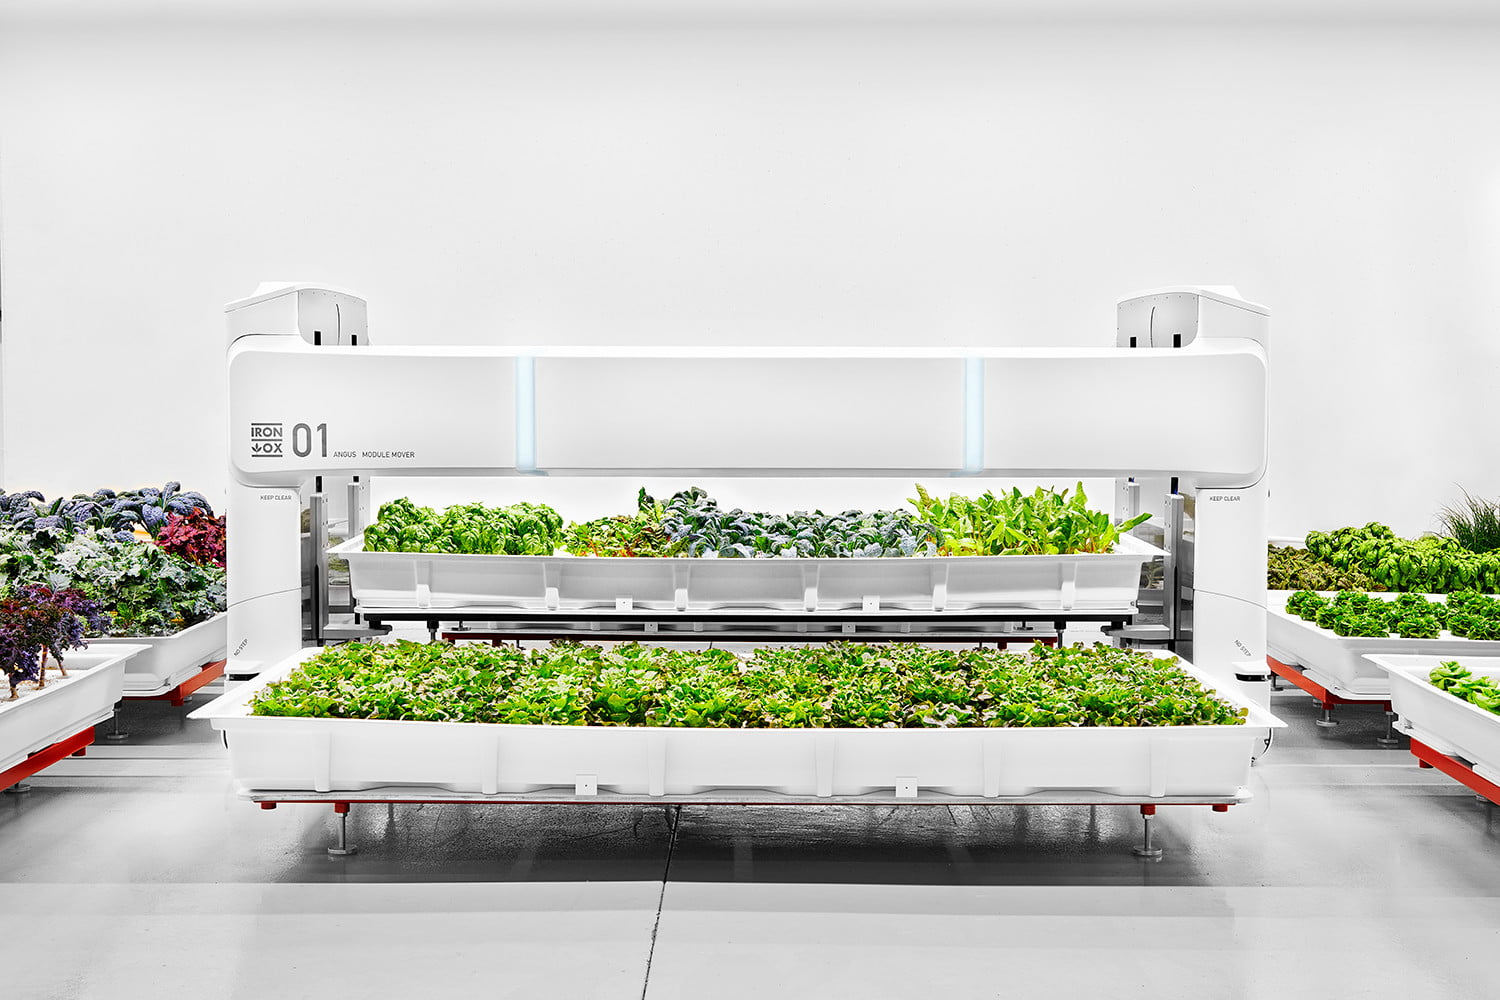 Silicon Valley just got a new automated farm where leafy